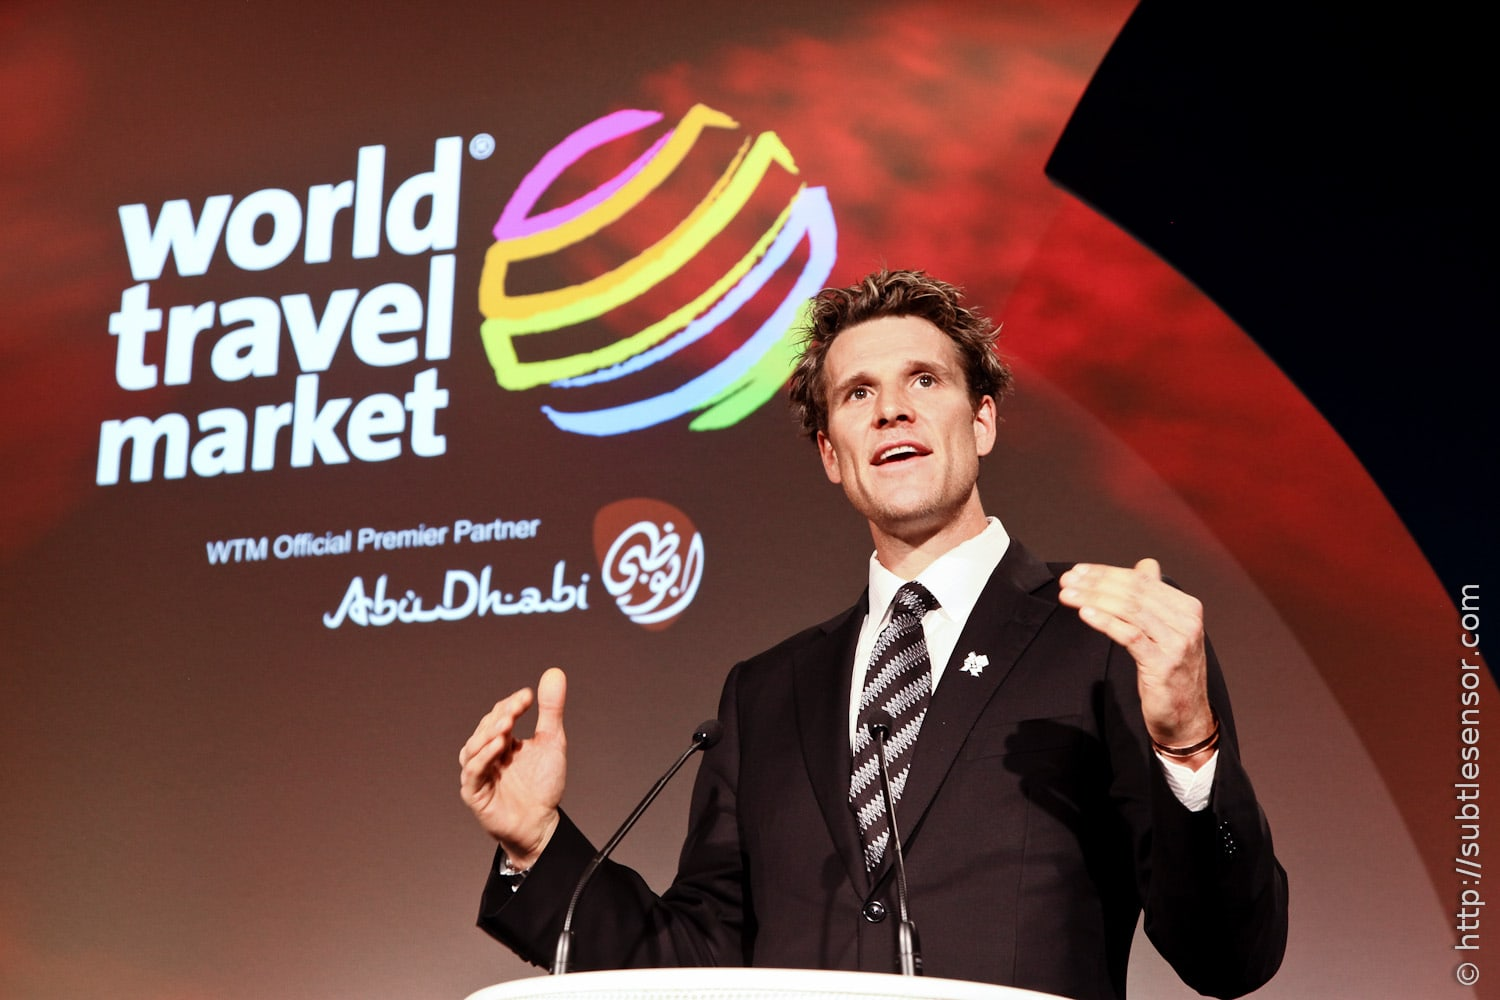 James Cracknell OBE giving an inspiring speech at World Travel Market 2011